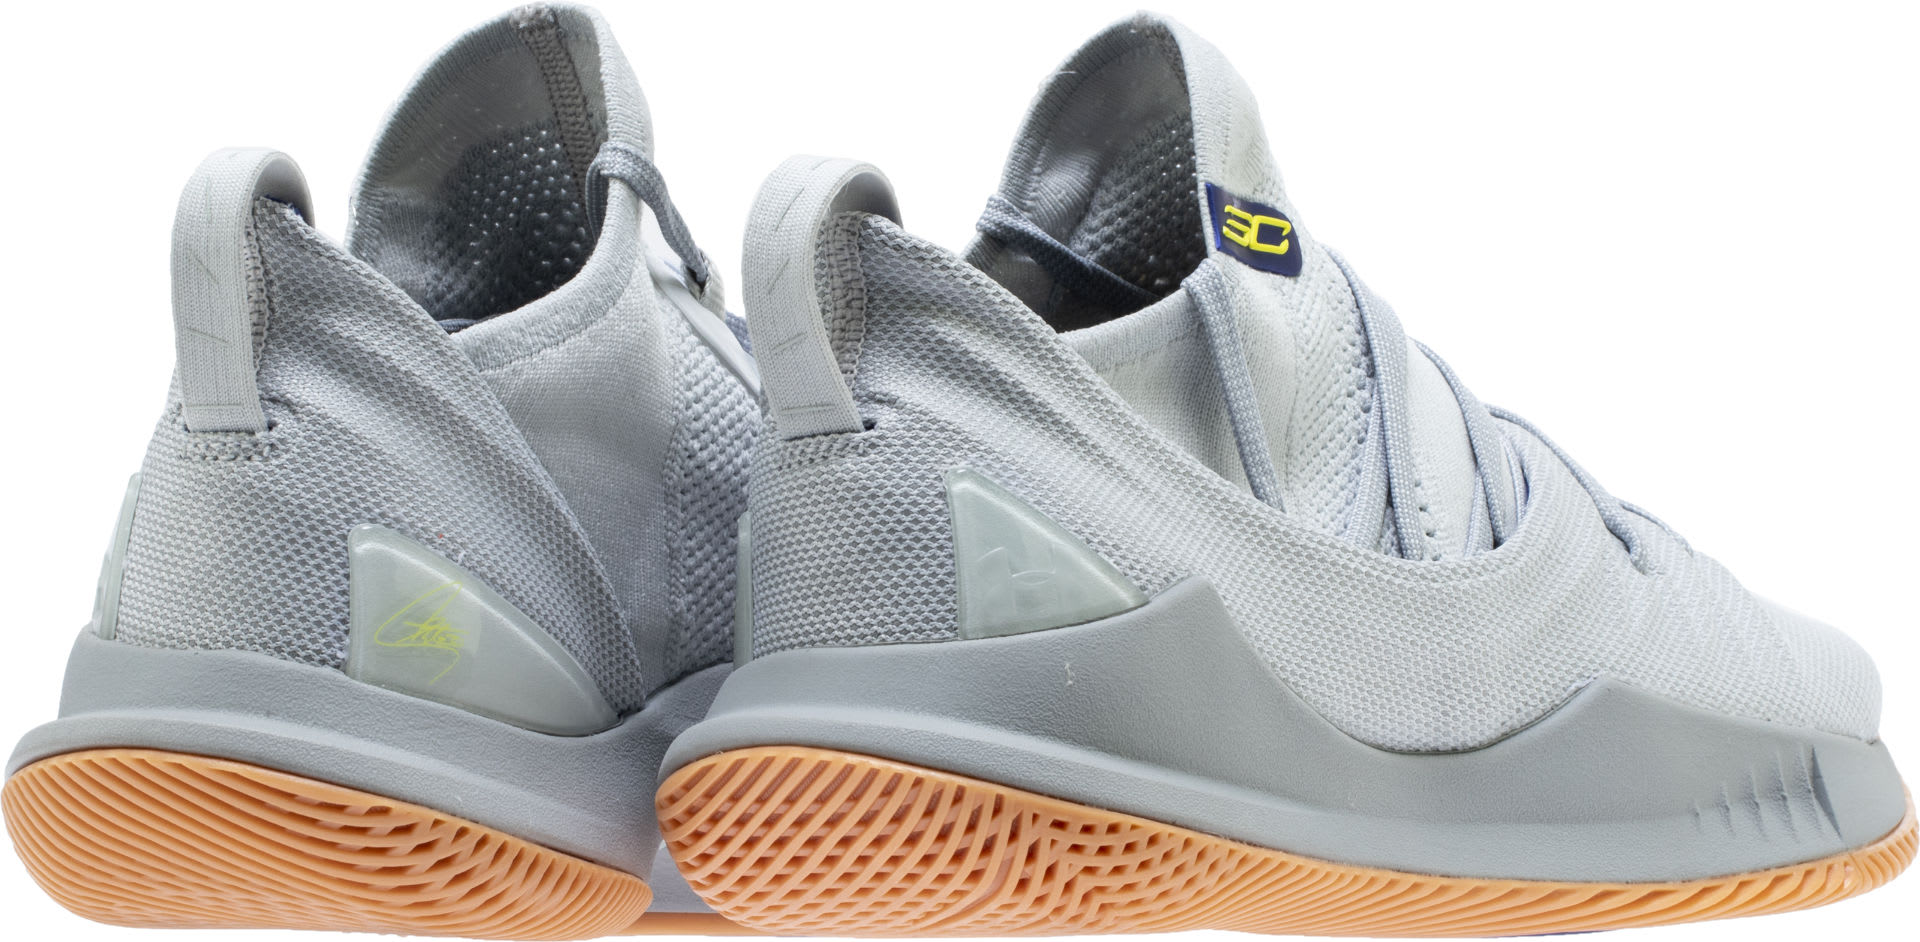 under-armour-curry-5-elemental-ivory-tokyo-lime